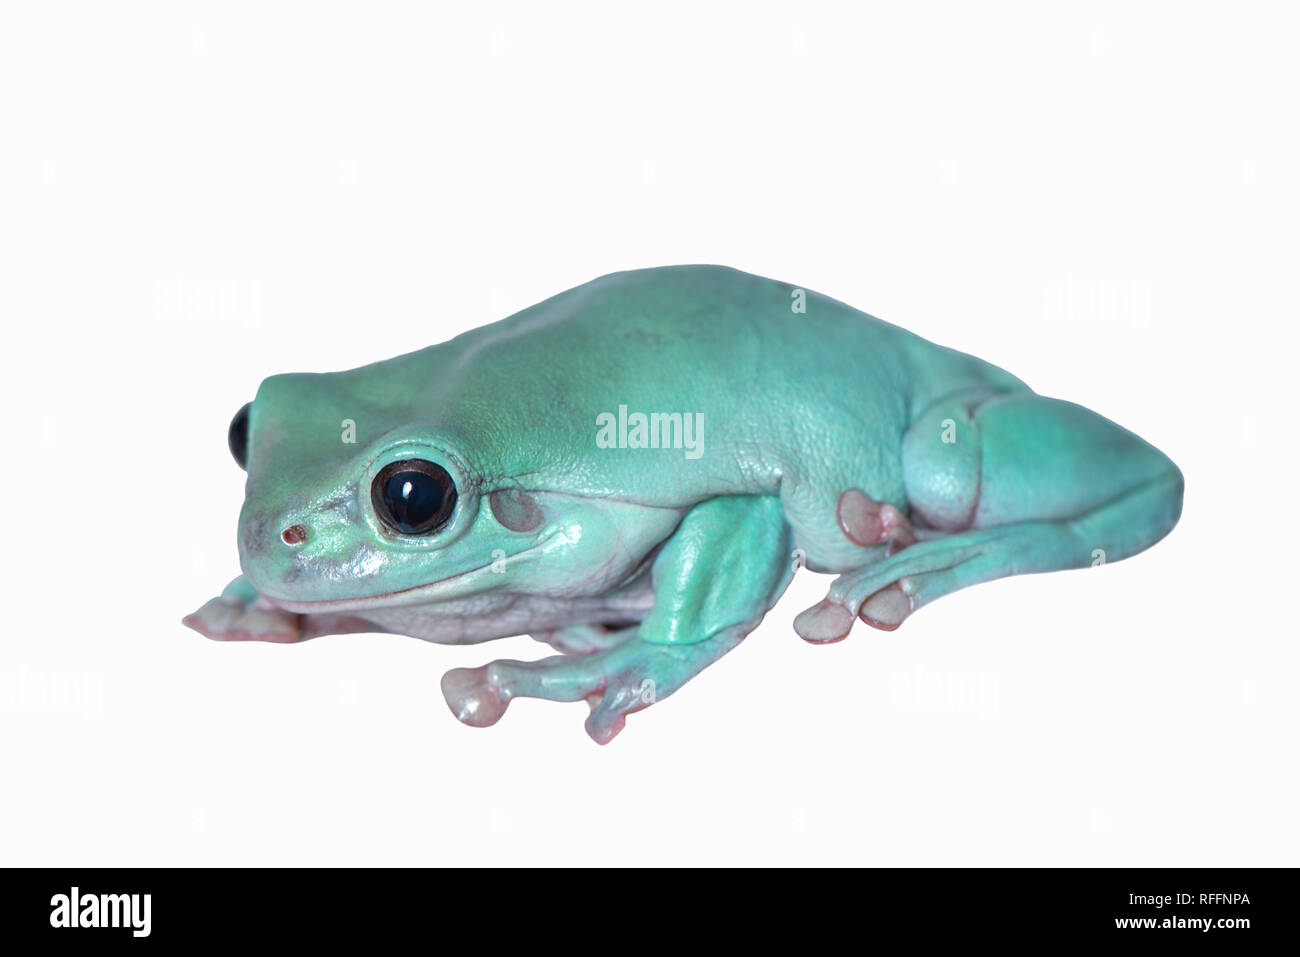 White's tree frog - Stock Image